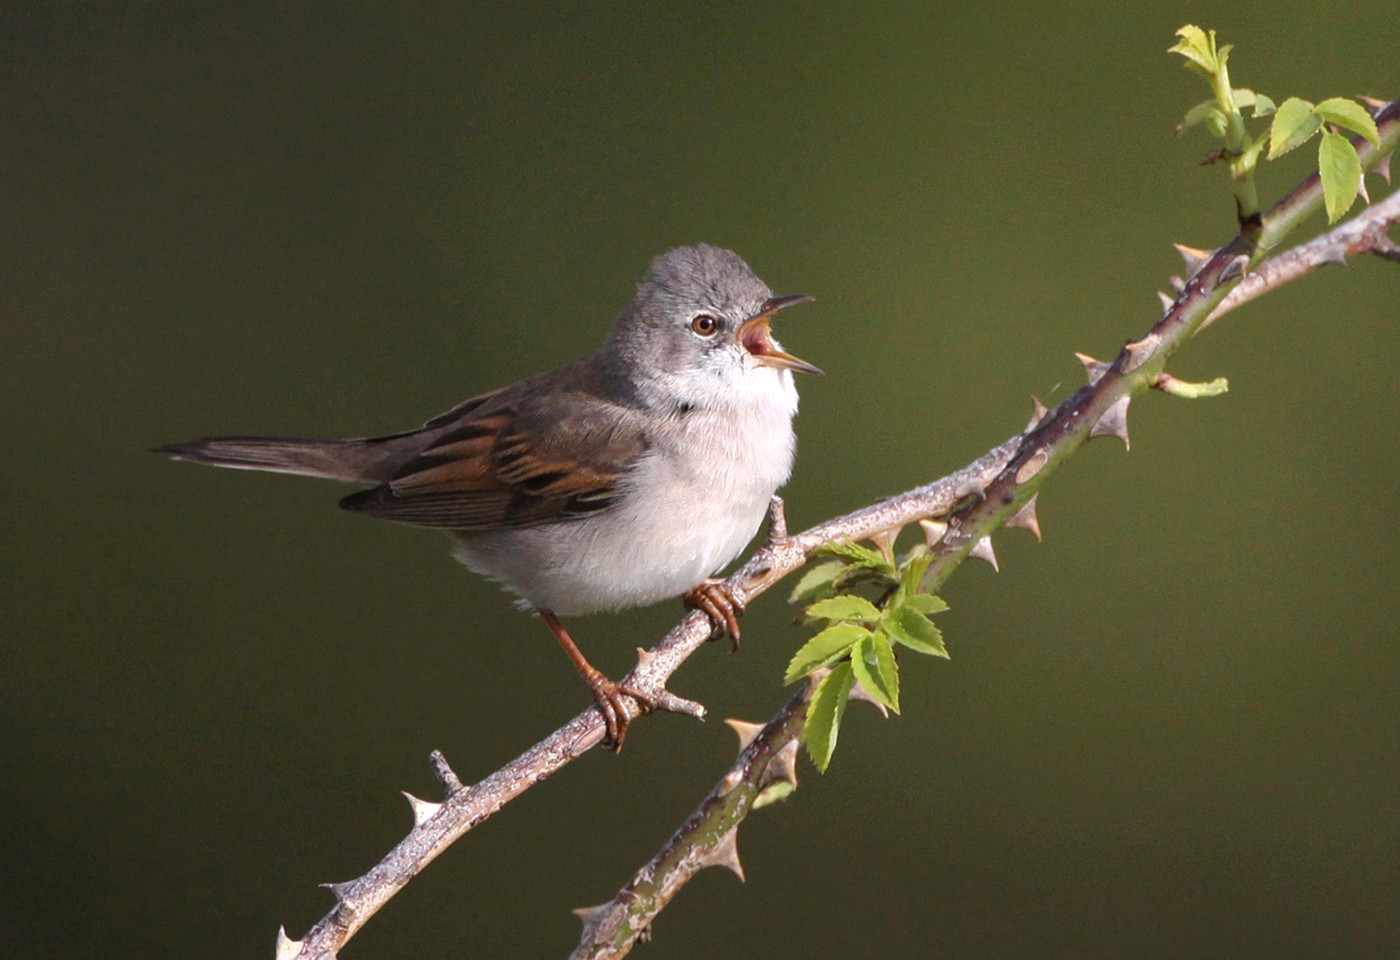 whitethroat by Jane Pickles